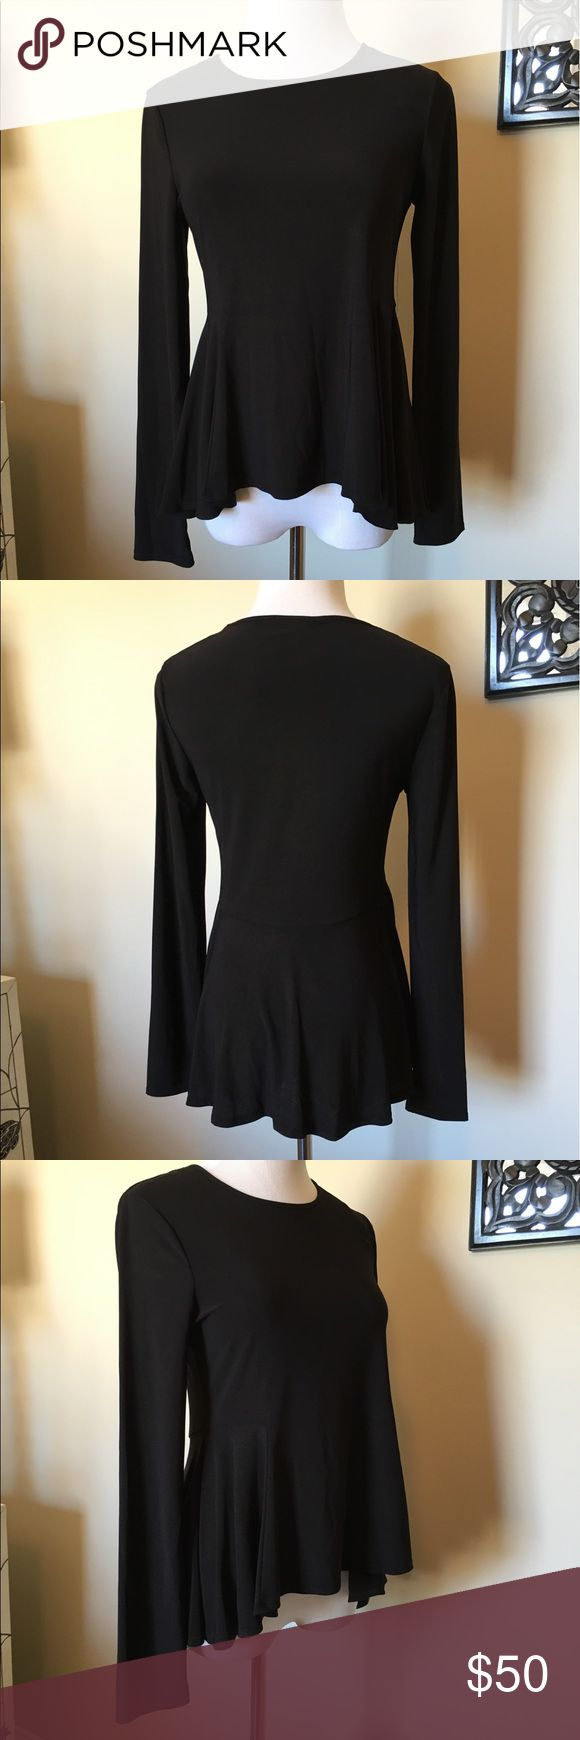 NWOT, CeCe, Stunning Black Long-sleeve Peplum Top! NWOT, CeCe, Stunning Black Long-sleeve Peplum Top! Amazingly quality with a great fit! Made of 96% polyester & 4% spandex. Brand new, never worn! Size XS. 🚫No Trades CeCe Tops Blouses